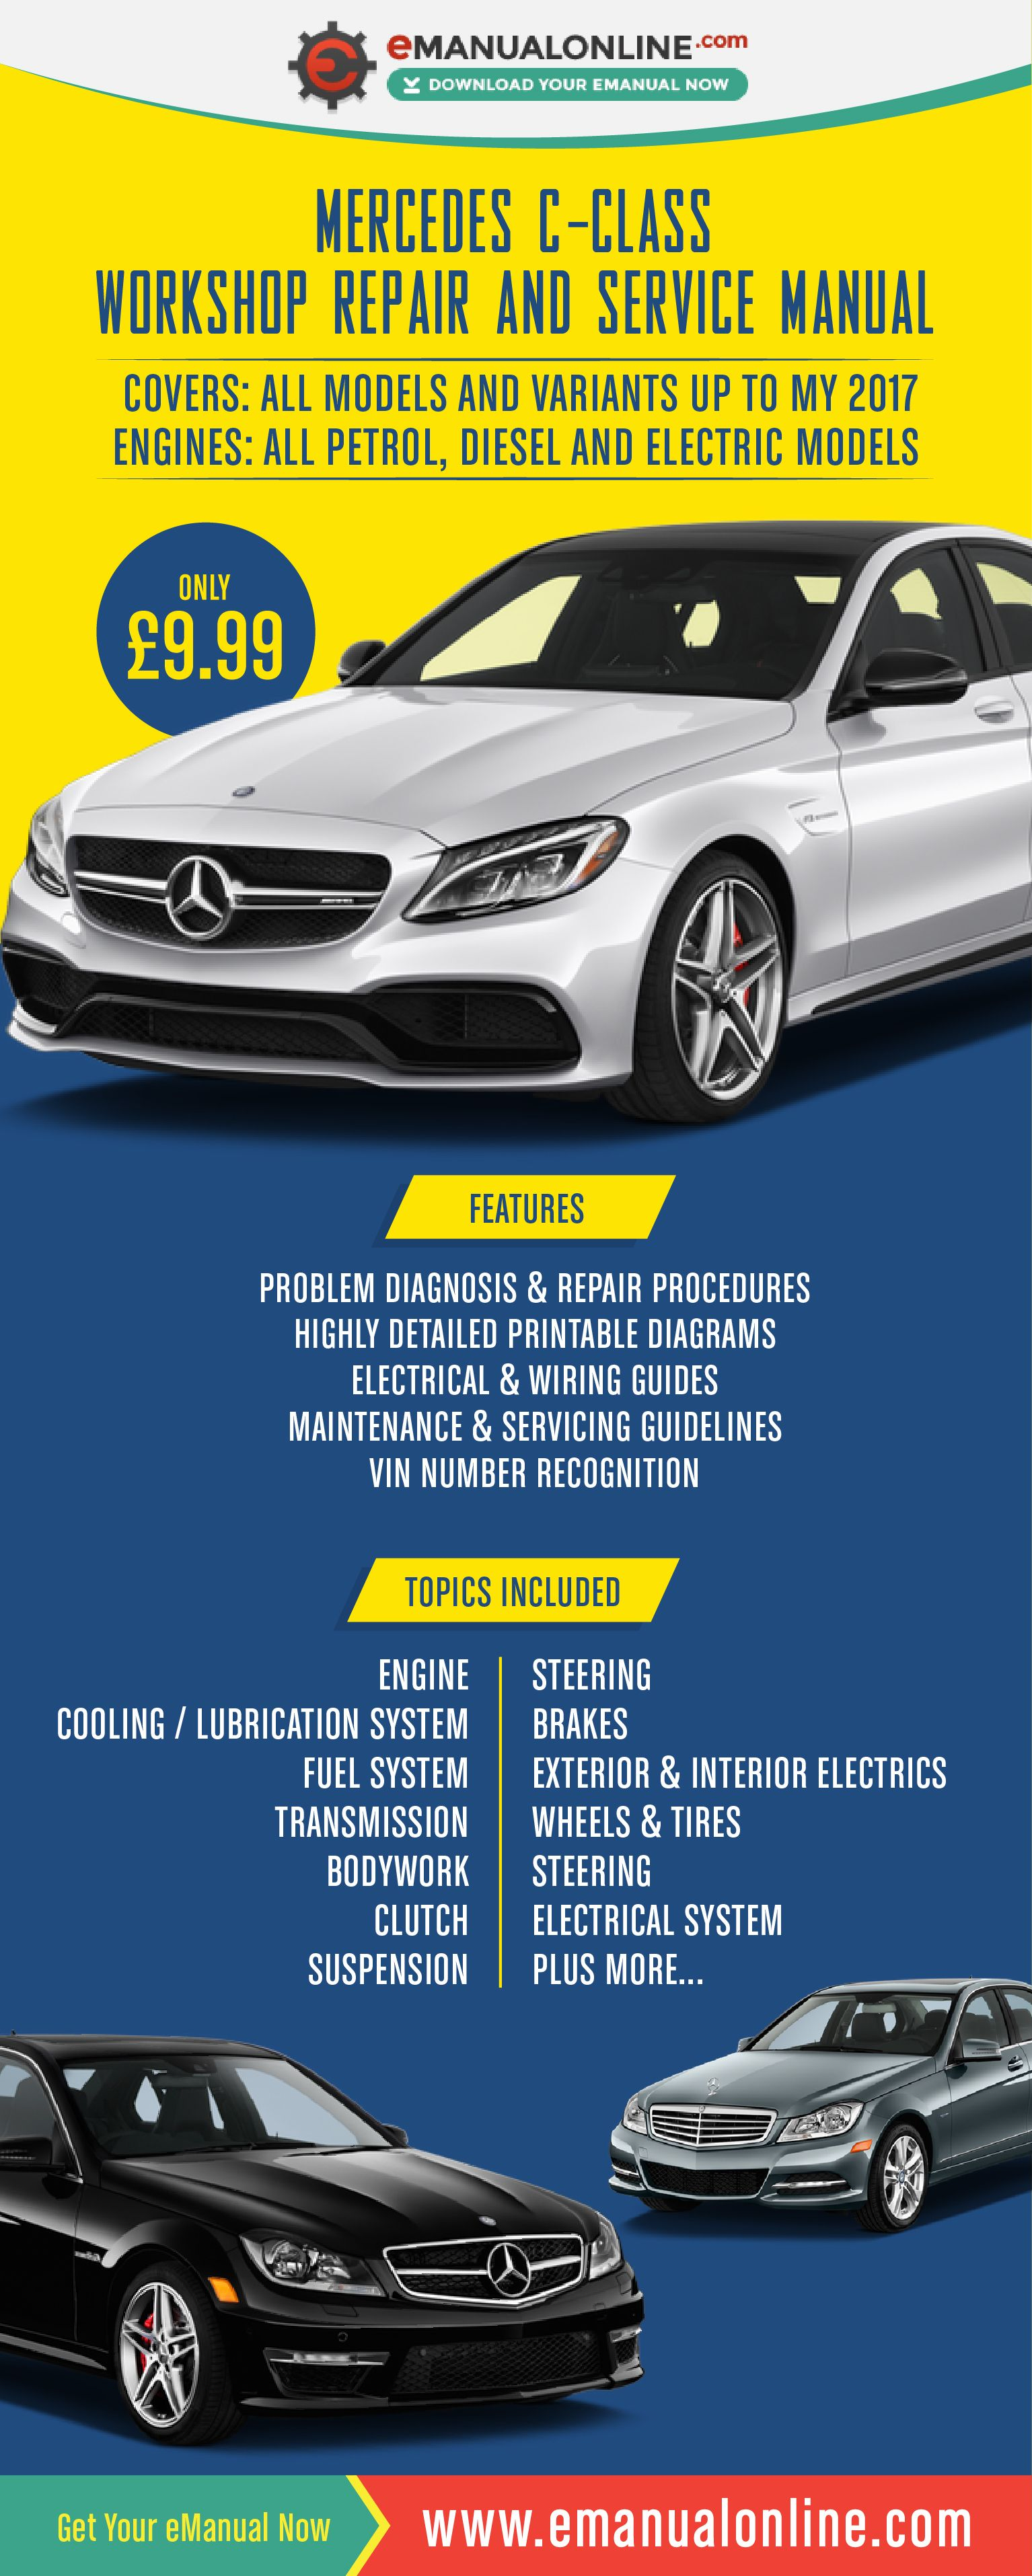 small resolution of mercedes c class workshop repair and service manual the detailed information contained within this workshop manual is quite simply stu cars bikes